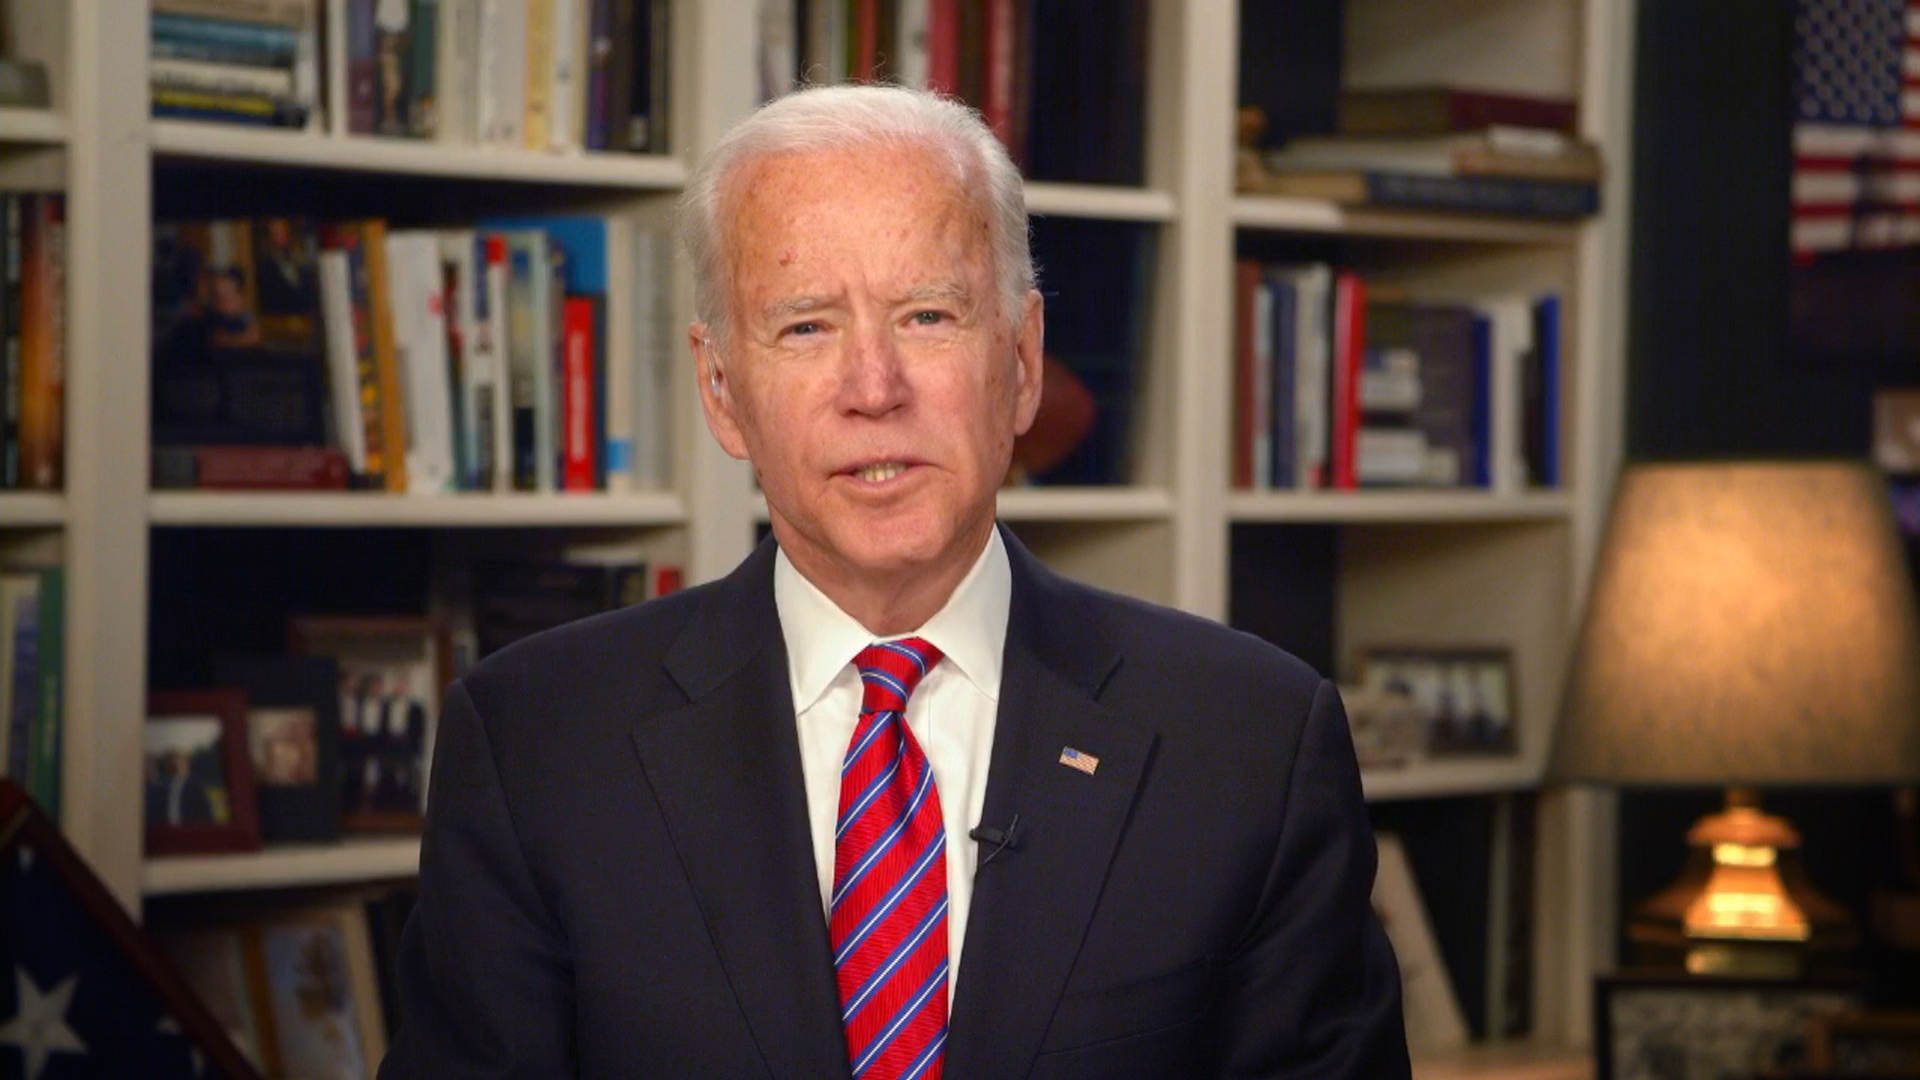 Biden debuts podcast in his virtual campaign for president